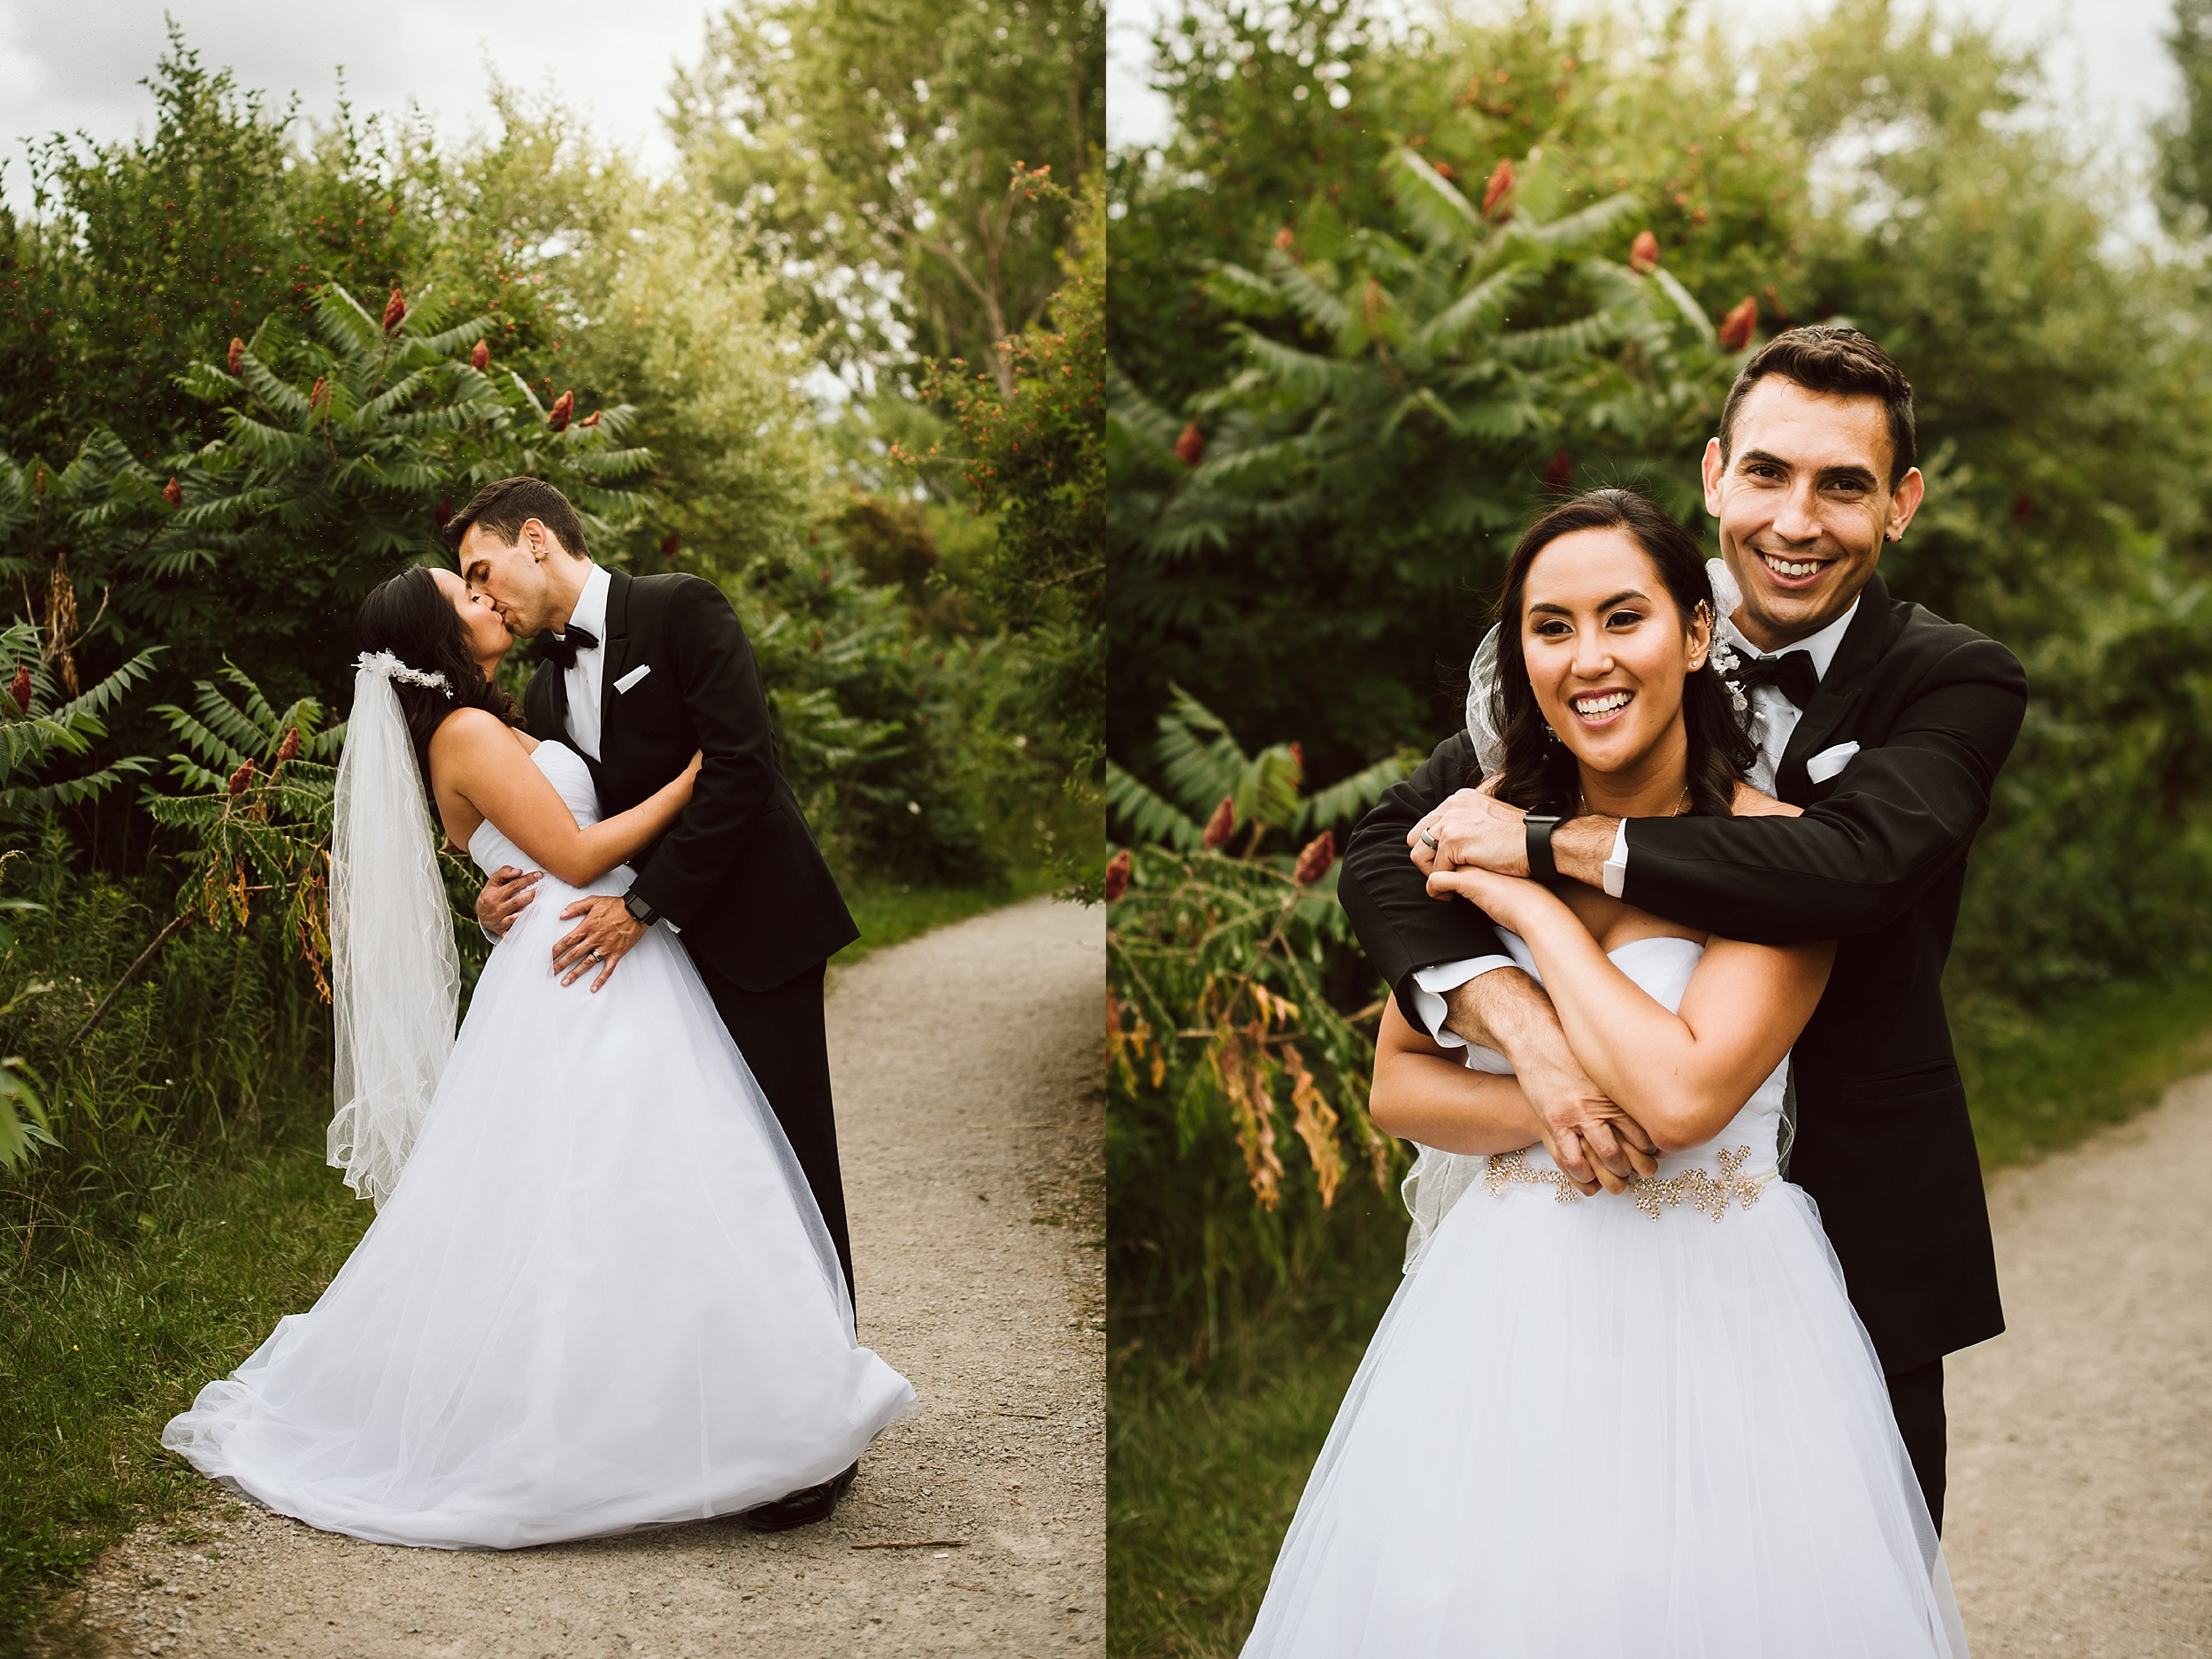 Toronto_Wedding_Photographer_Catholic_Portuguese_0064.jpg